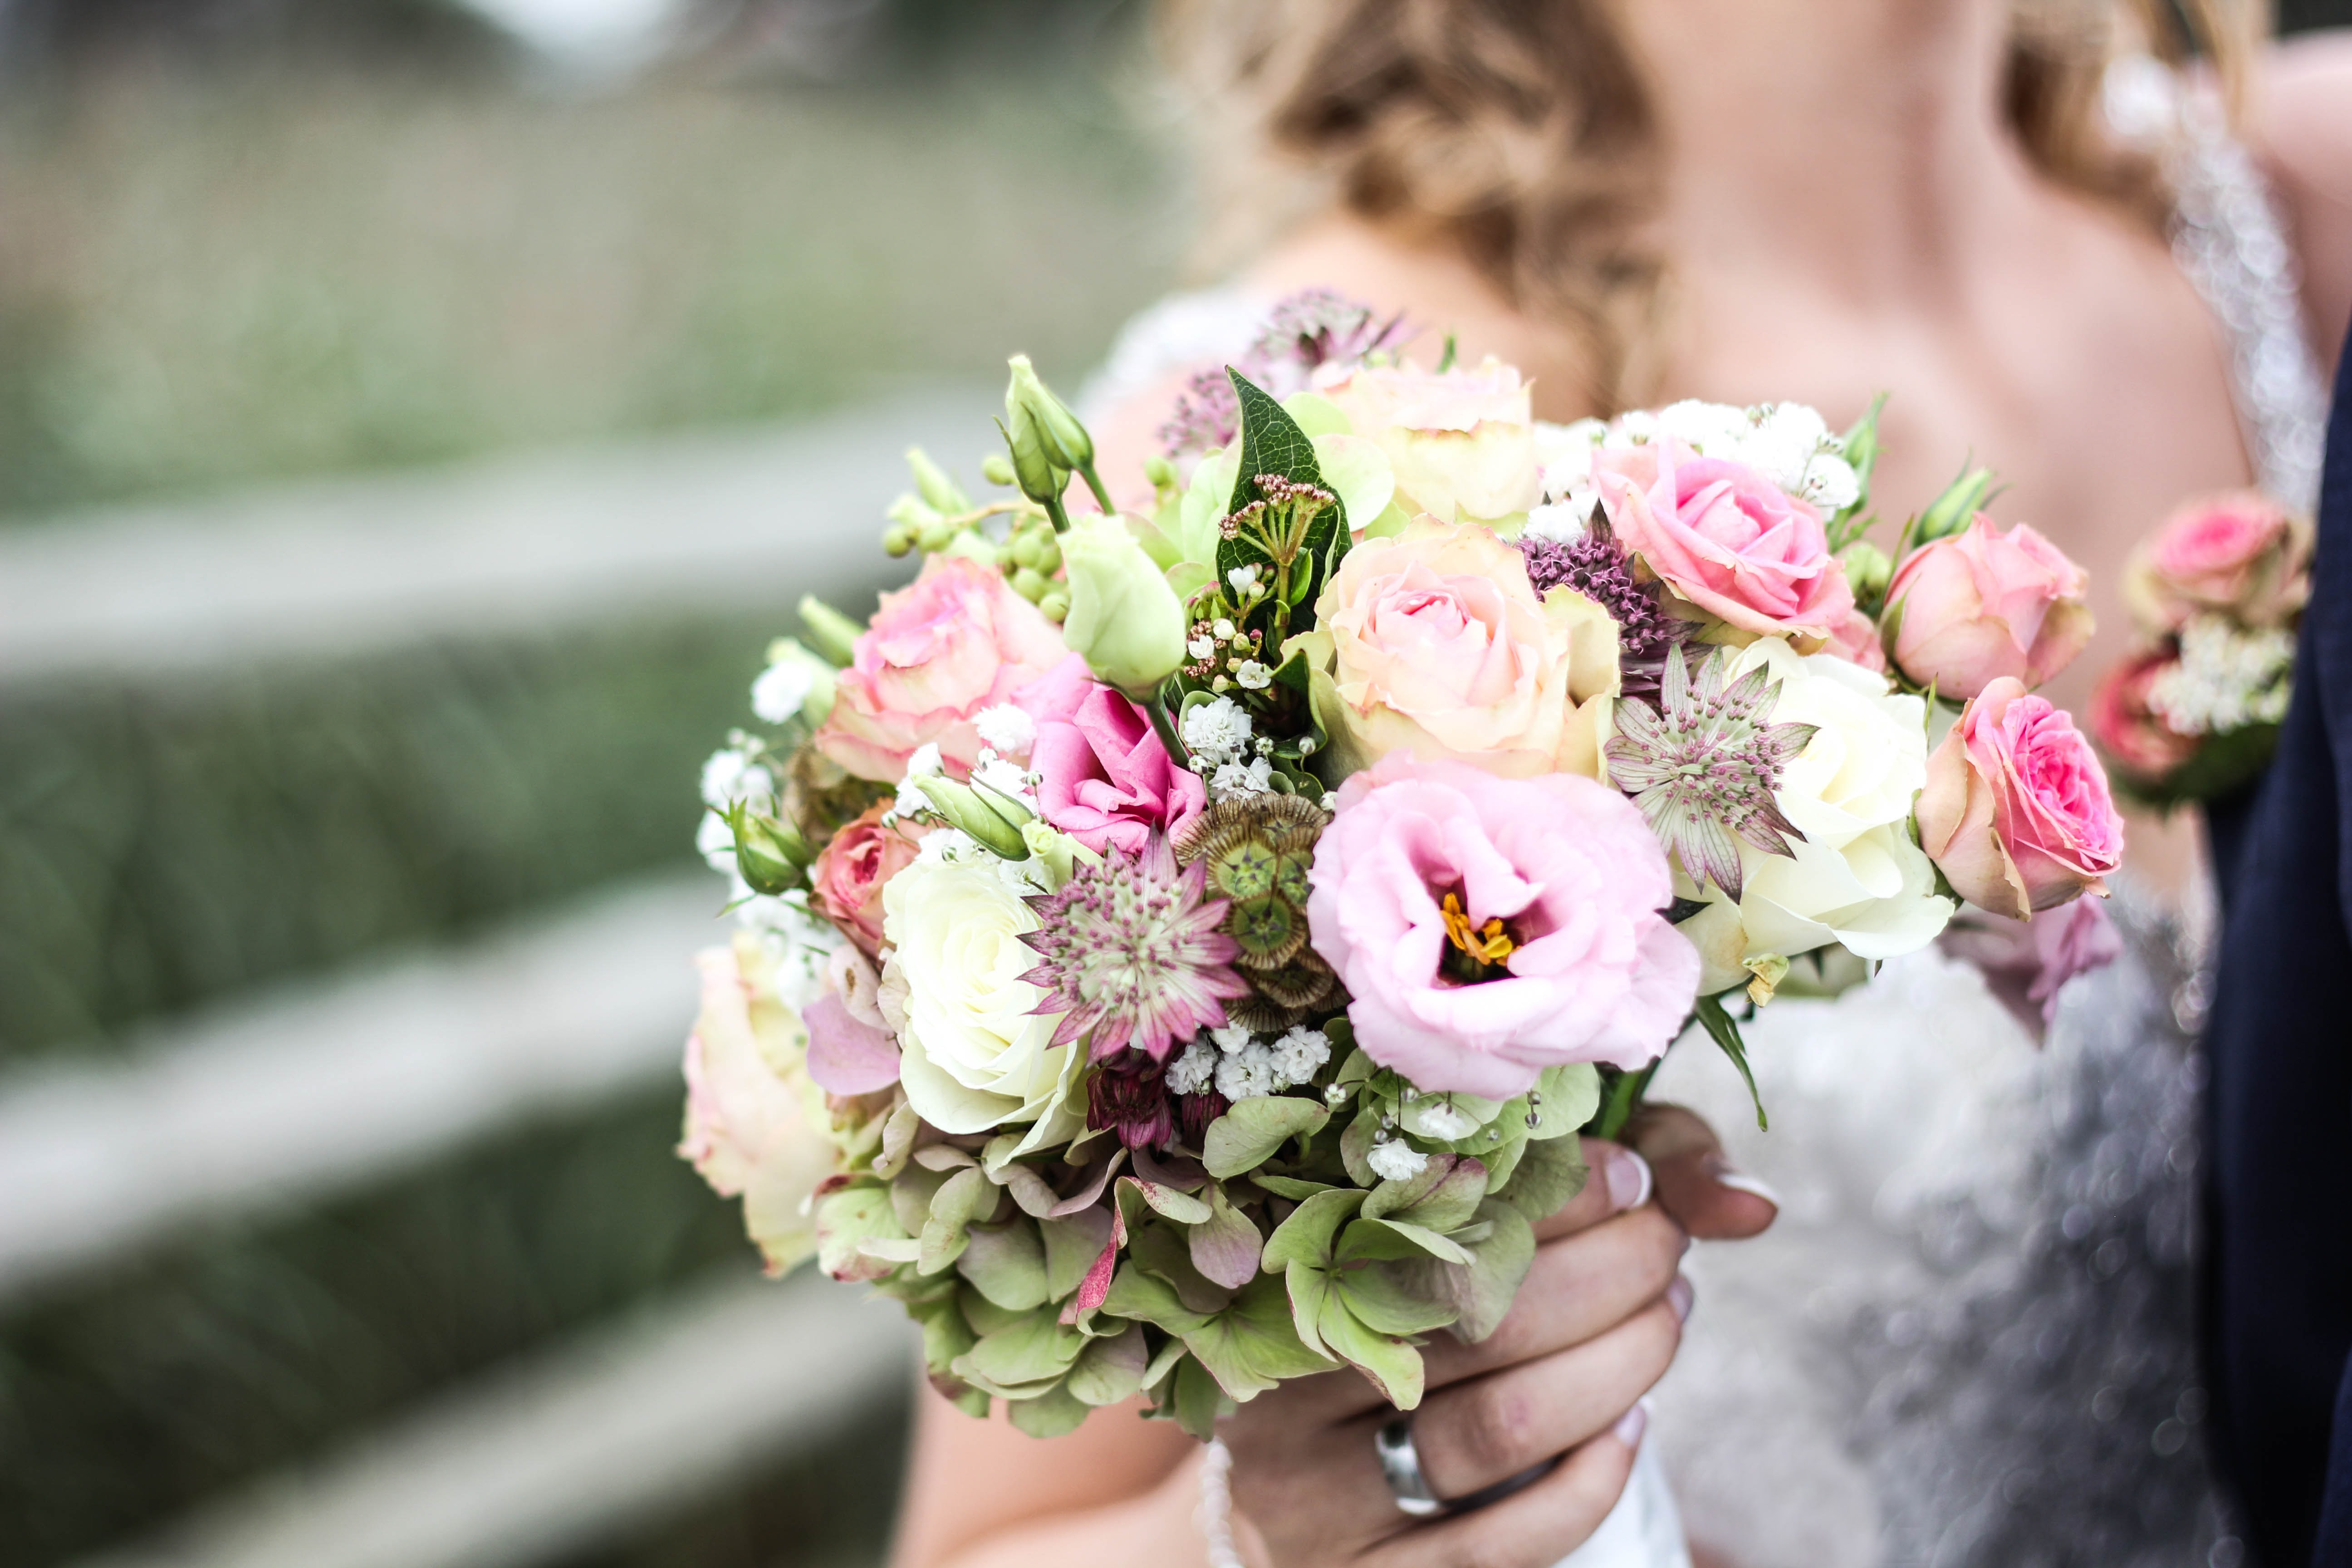 A bride holding a bouquet with pink roses and other delicate flowers